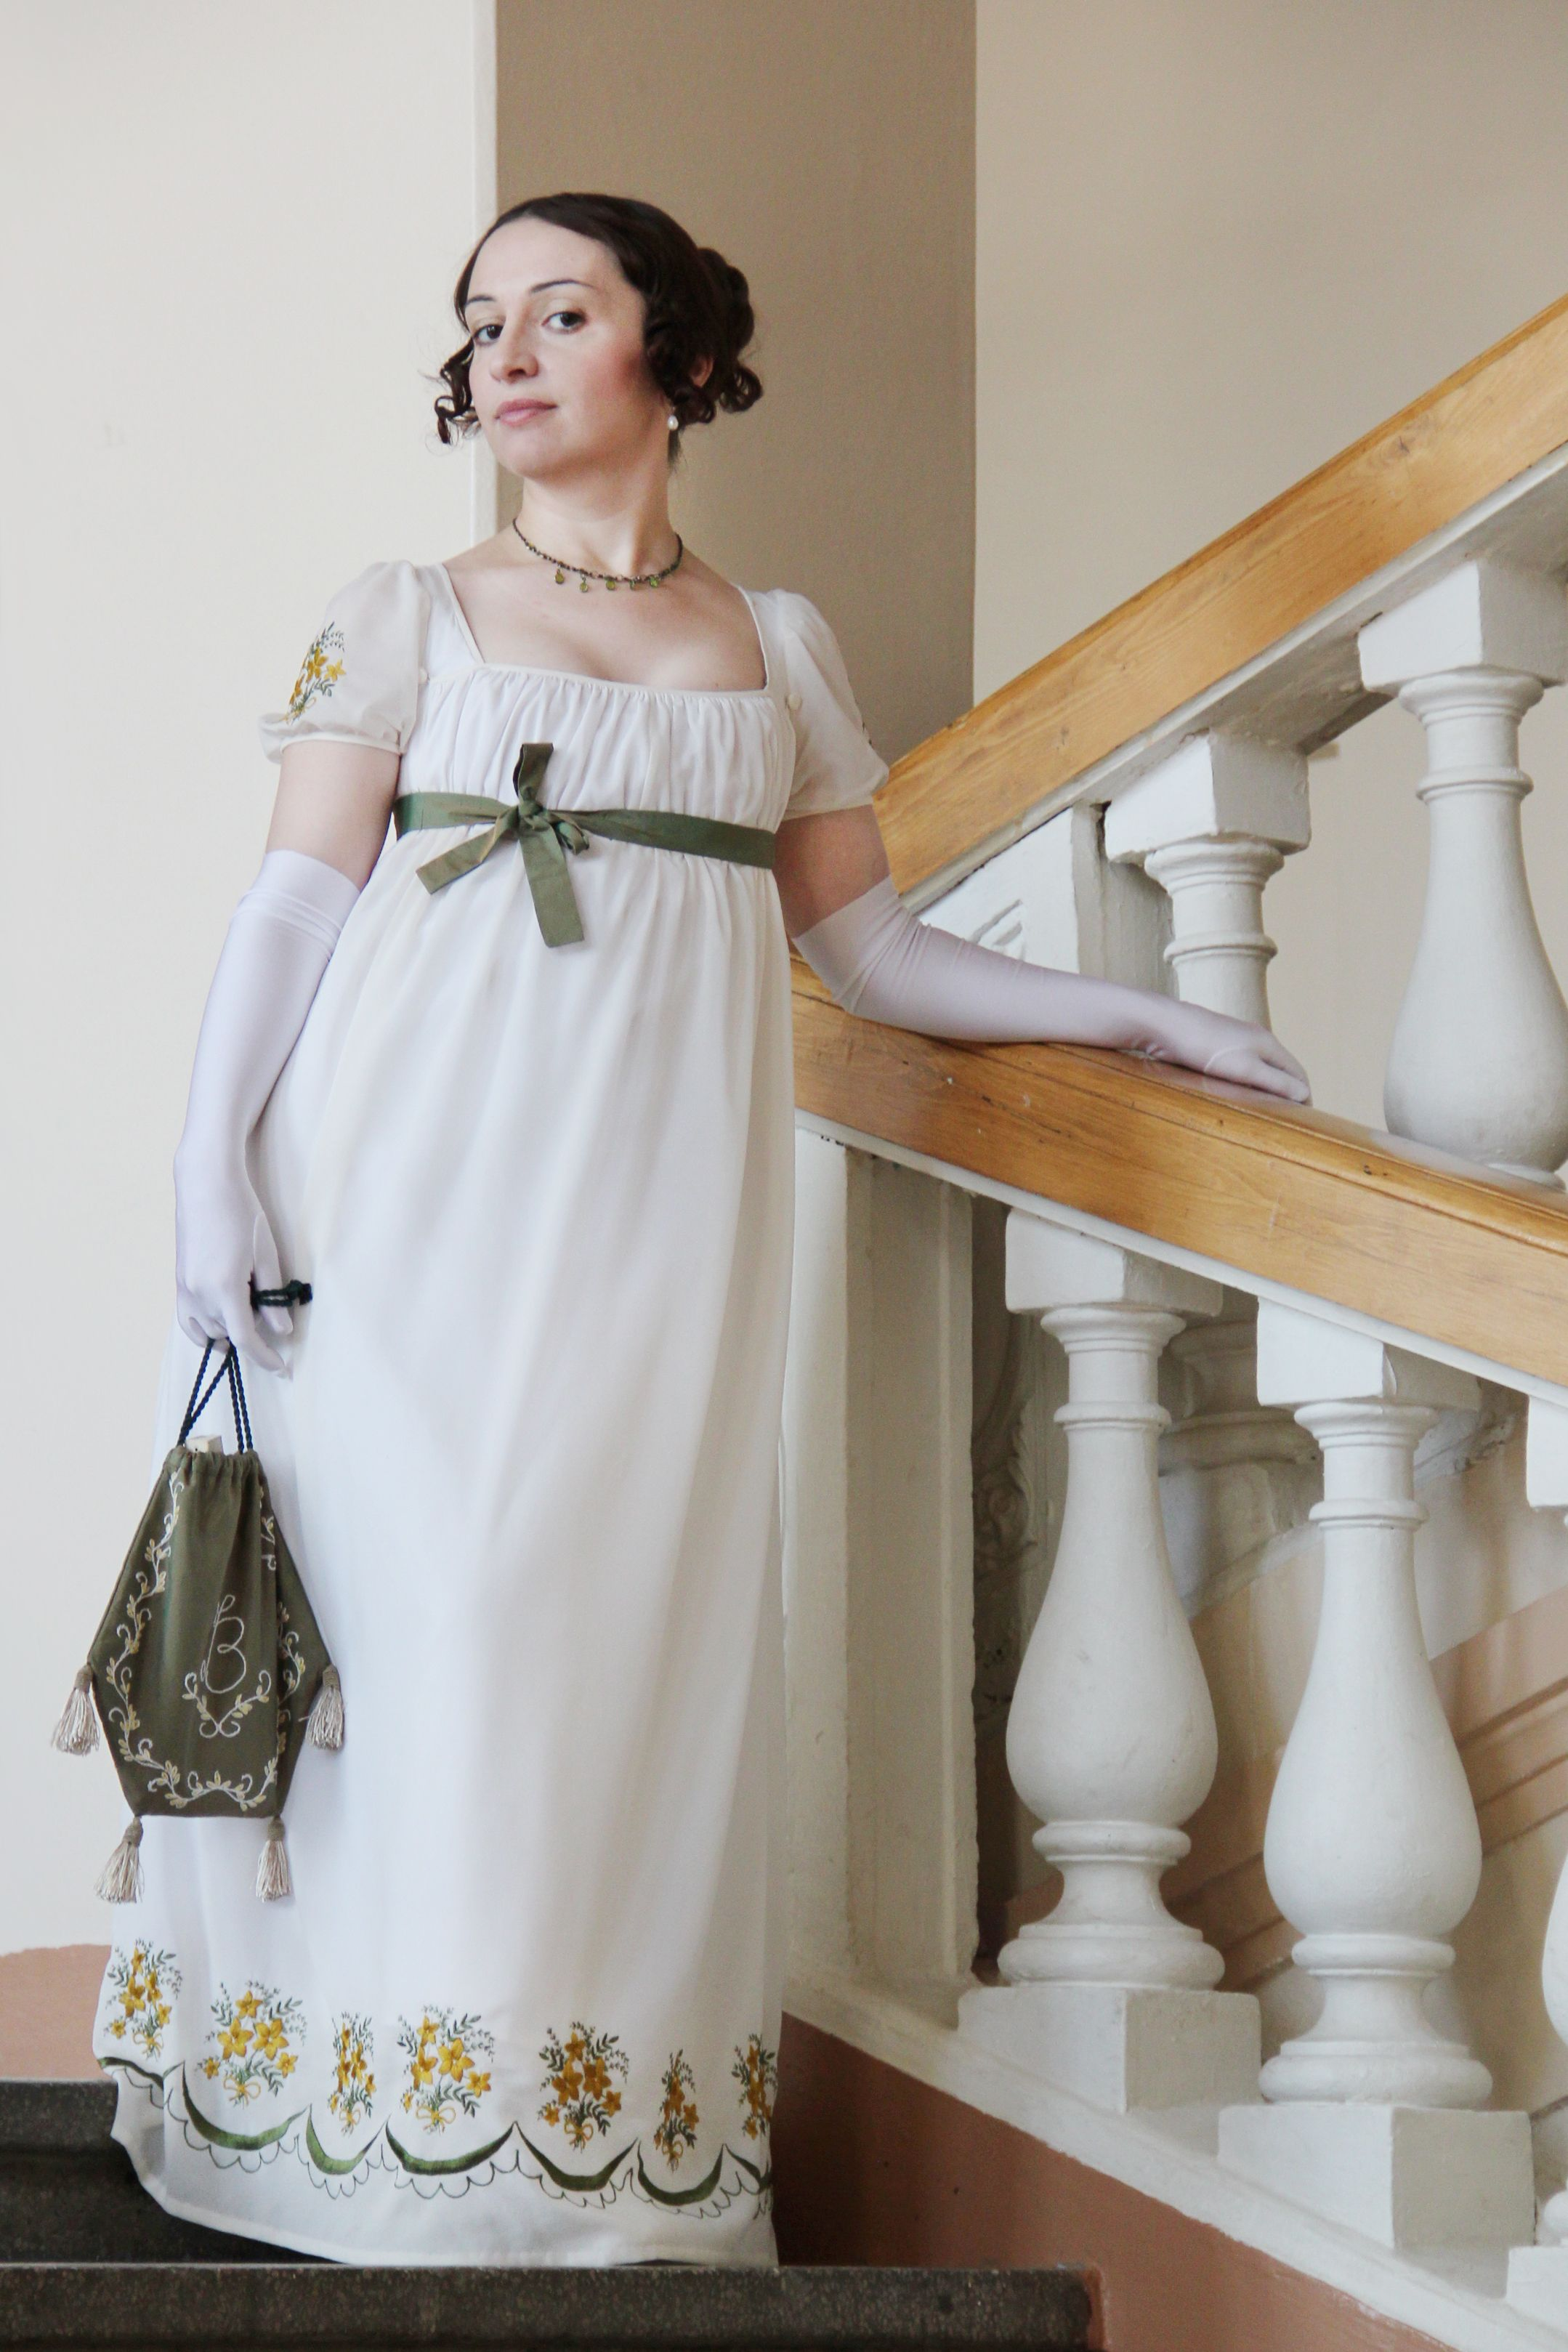 What does an empire style look like in clothes and interior